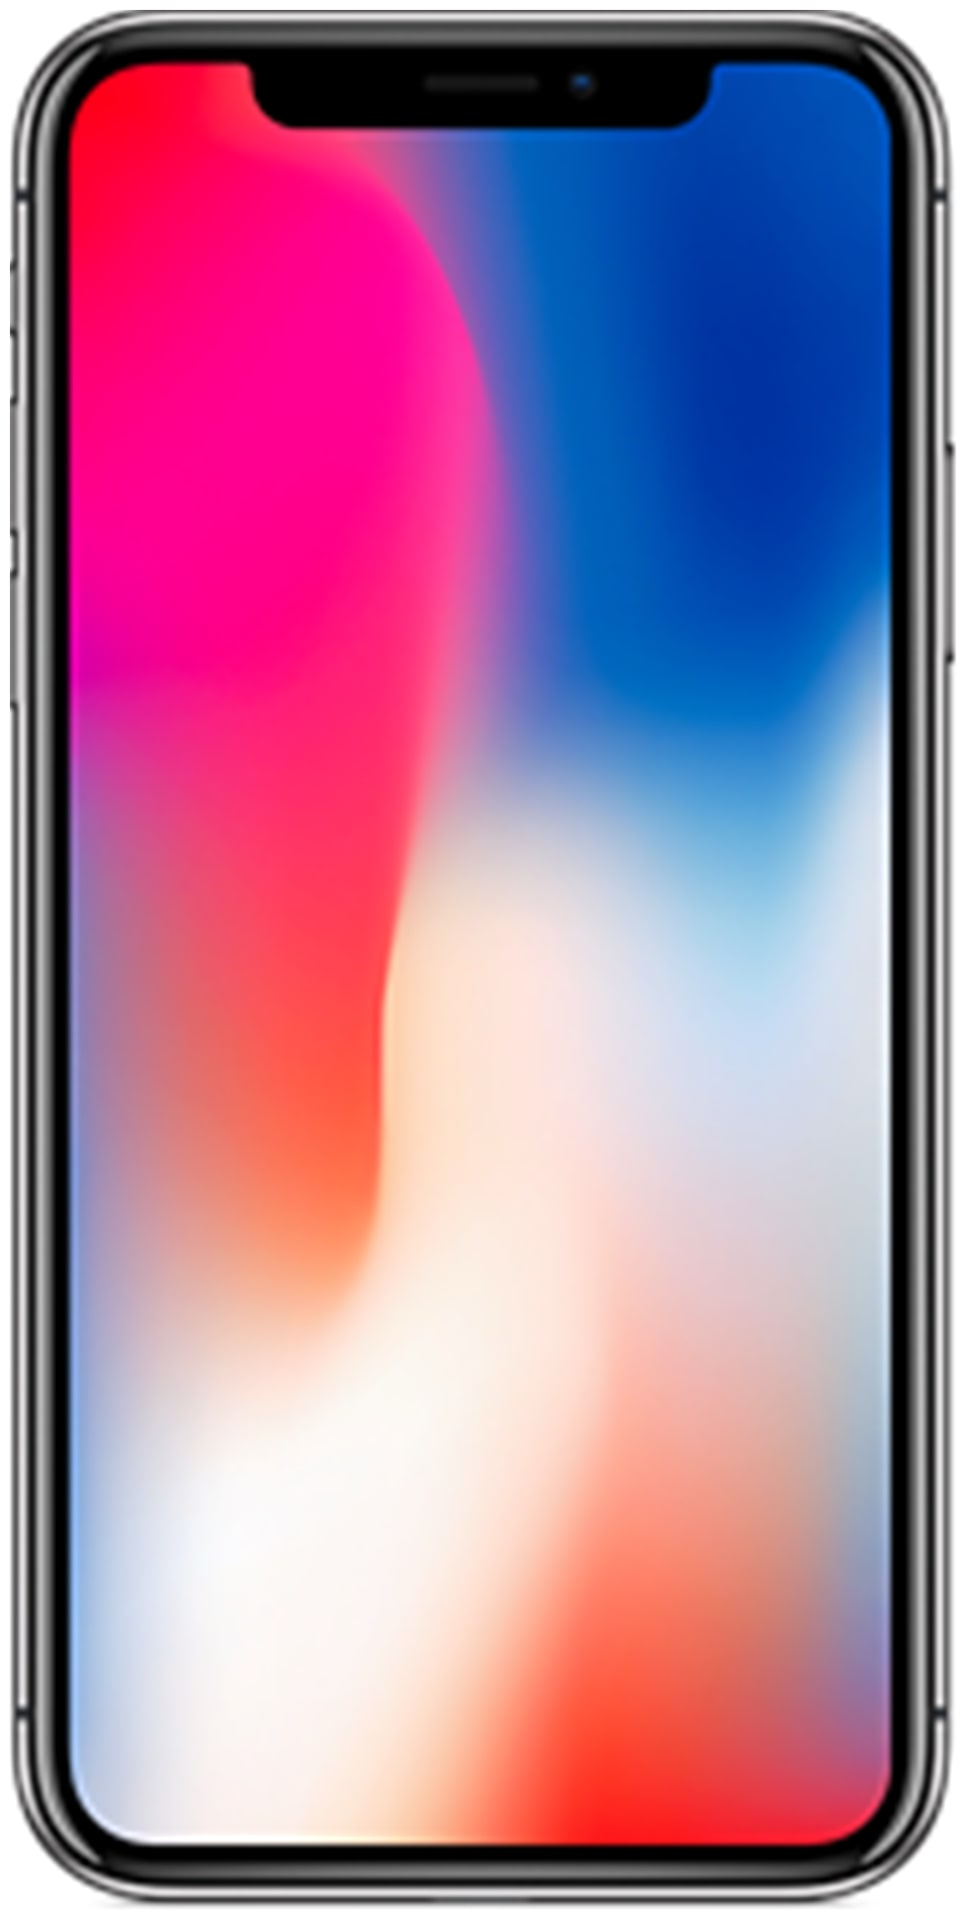 [Check pc] Paytm- Apple iphone X 256 gb, space grey